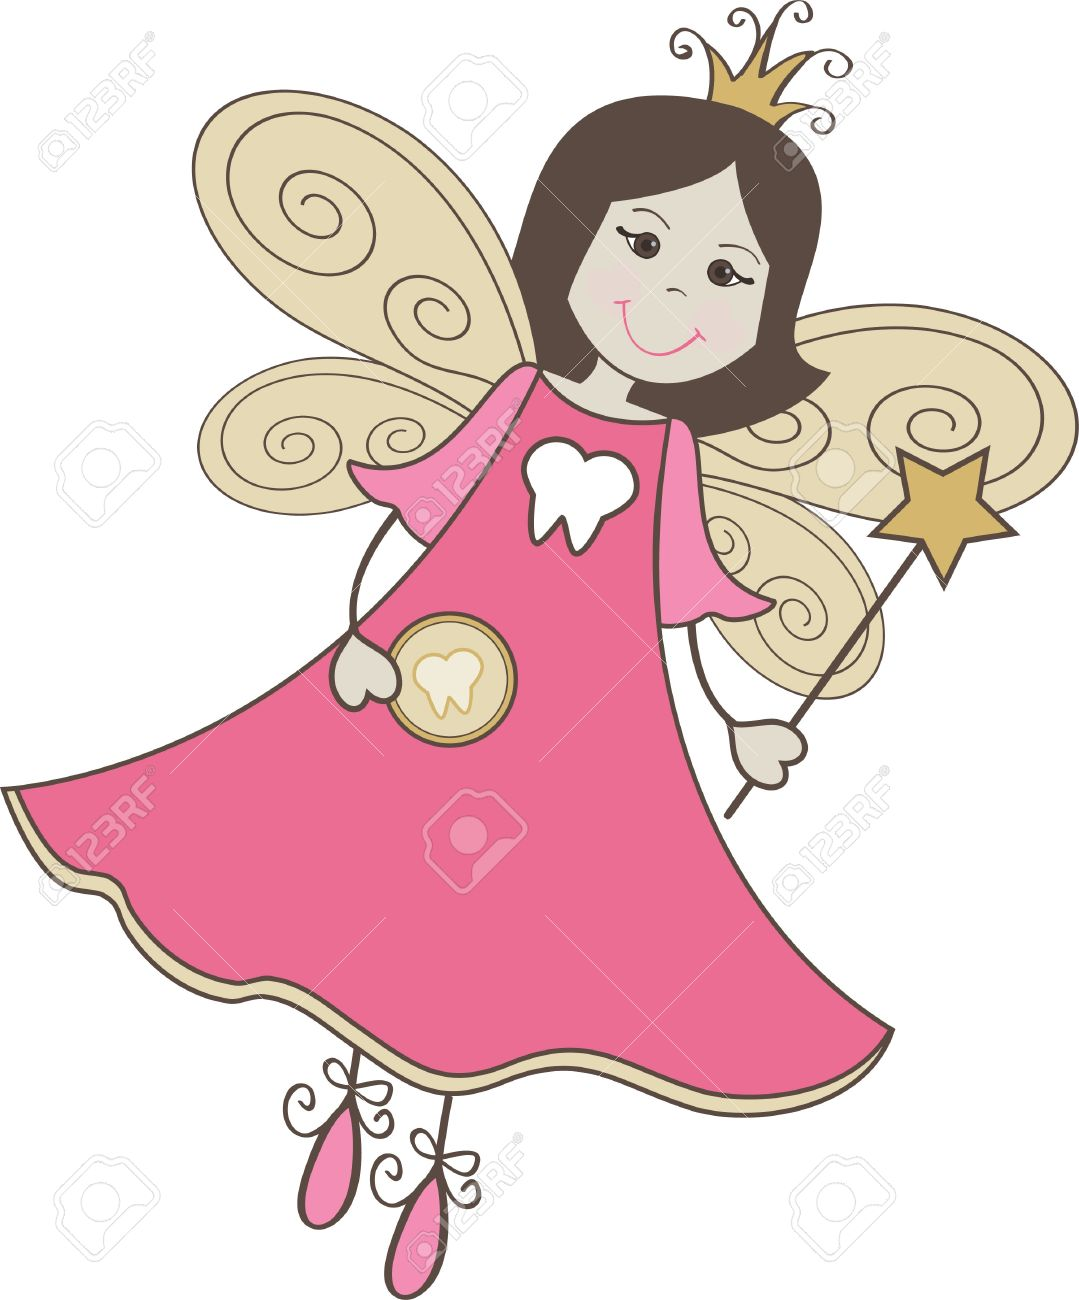 tooth fairy stick figure royalty free cliparts vectors and stock